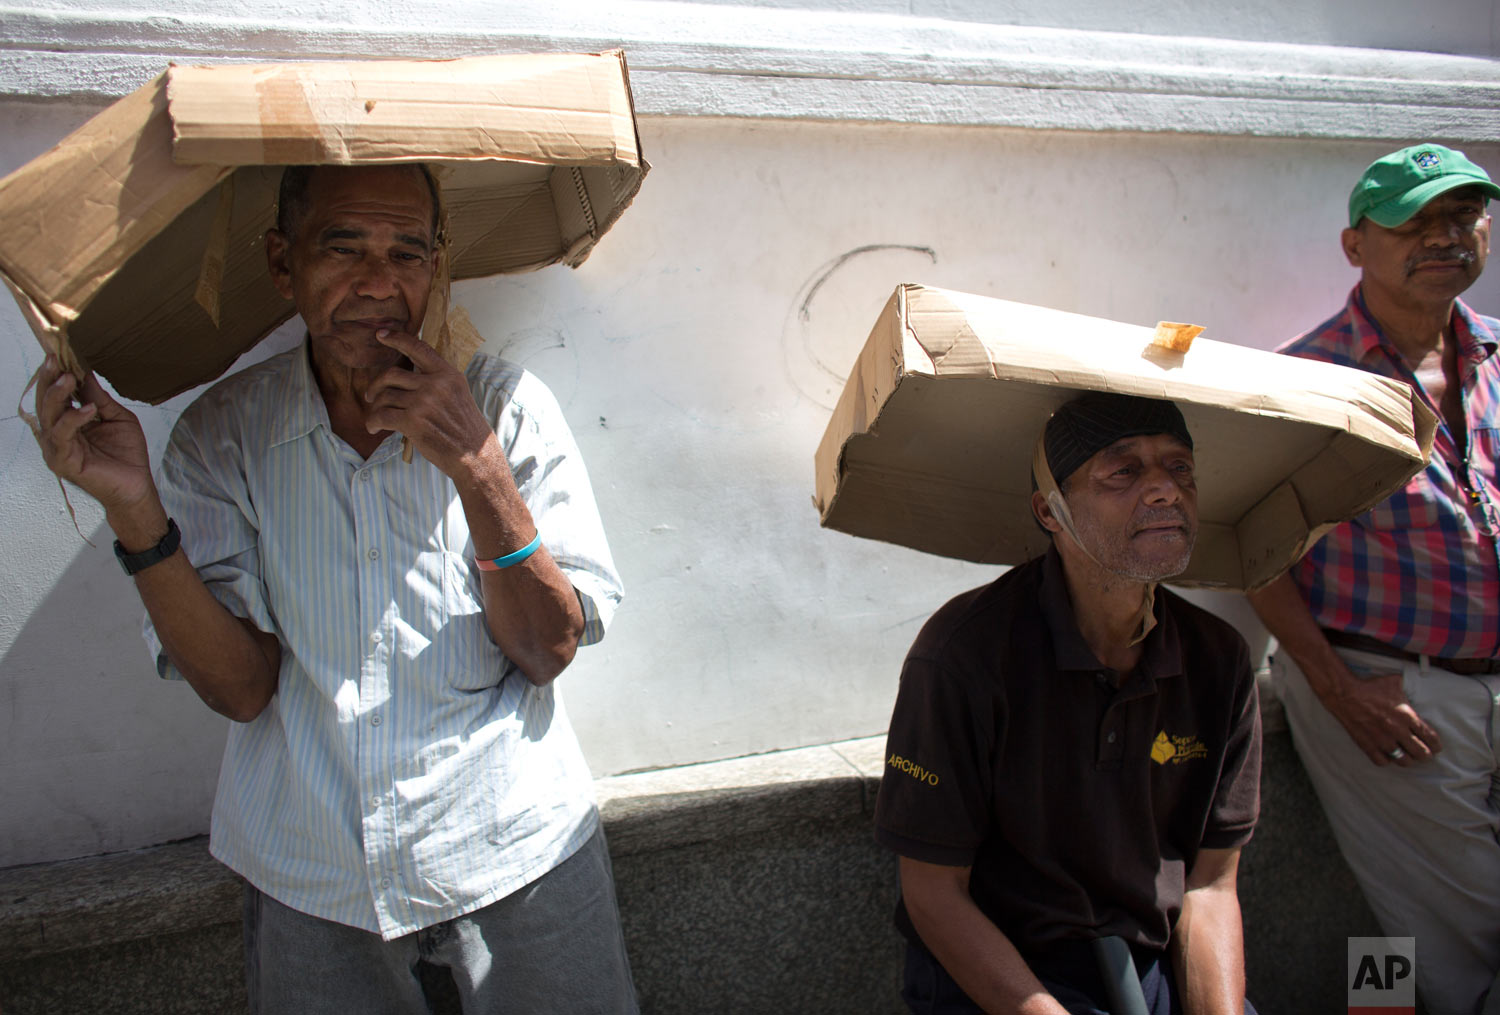 In this Aug. 3, 2018 photo, men shade themselves with cardboard boxes as they wait in line for a vehicle census, a first step to regulate the sale of gasoline, in Caracas, Venezuela. President Nicolas Maduro said that some of the world's cheapest gasoline that Venezuelan drivers enjoy will soon be sold at world market prices, but that those showing their government-issued identification card at the pump will still be able to buy subsidized gasoline. (AP Photo/Ariana Cubillos)